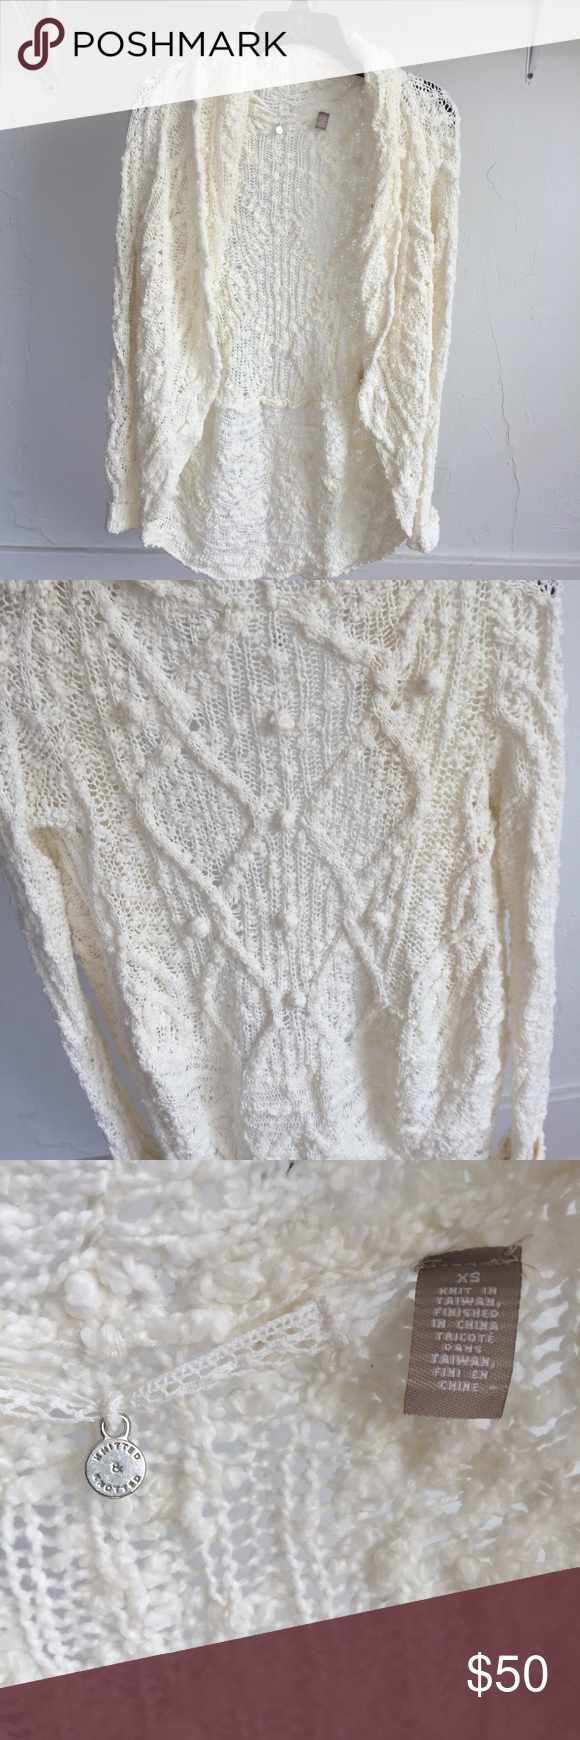 Knitted & Knotted Anthropologie knitted cardigan | Sweater ...